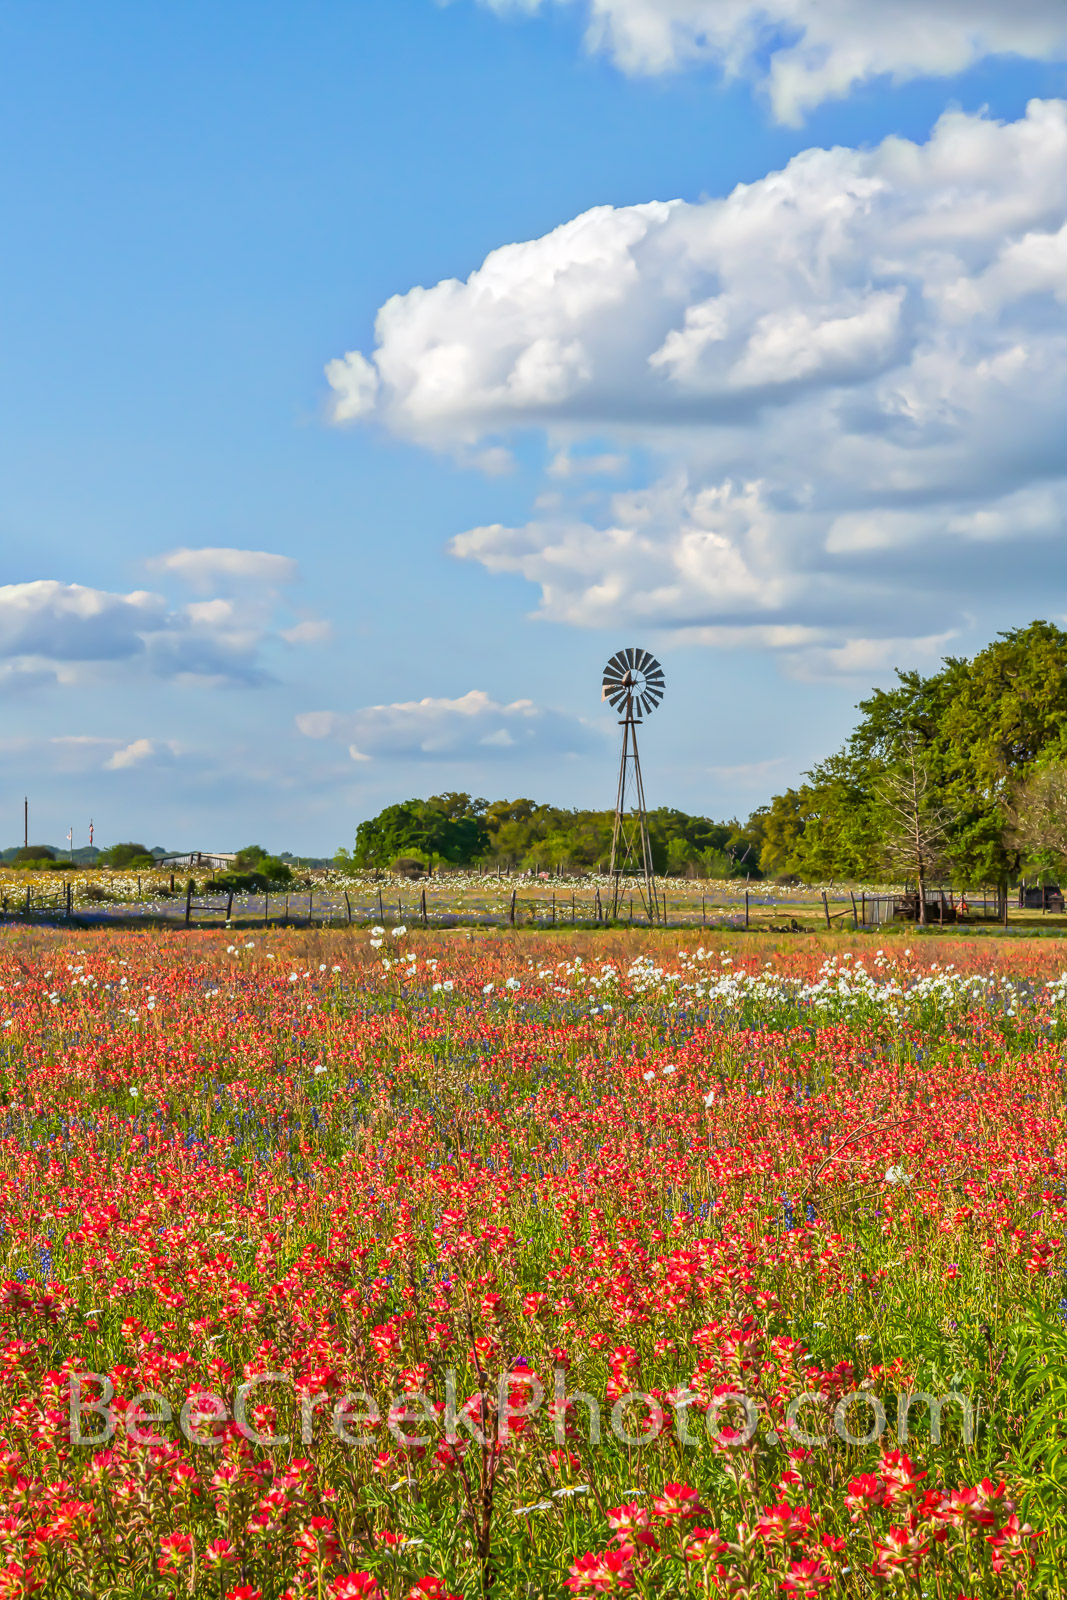 Windmill and Wildflowers Vertical - A Texas windmill with a field of red indian paintbrush and some white poppies mix in for...